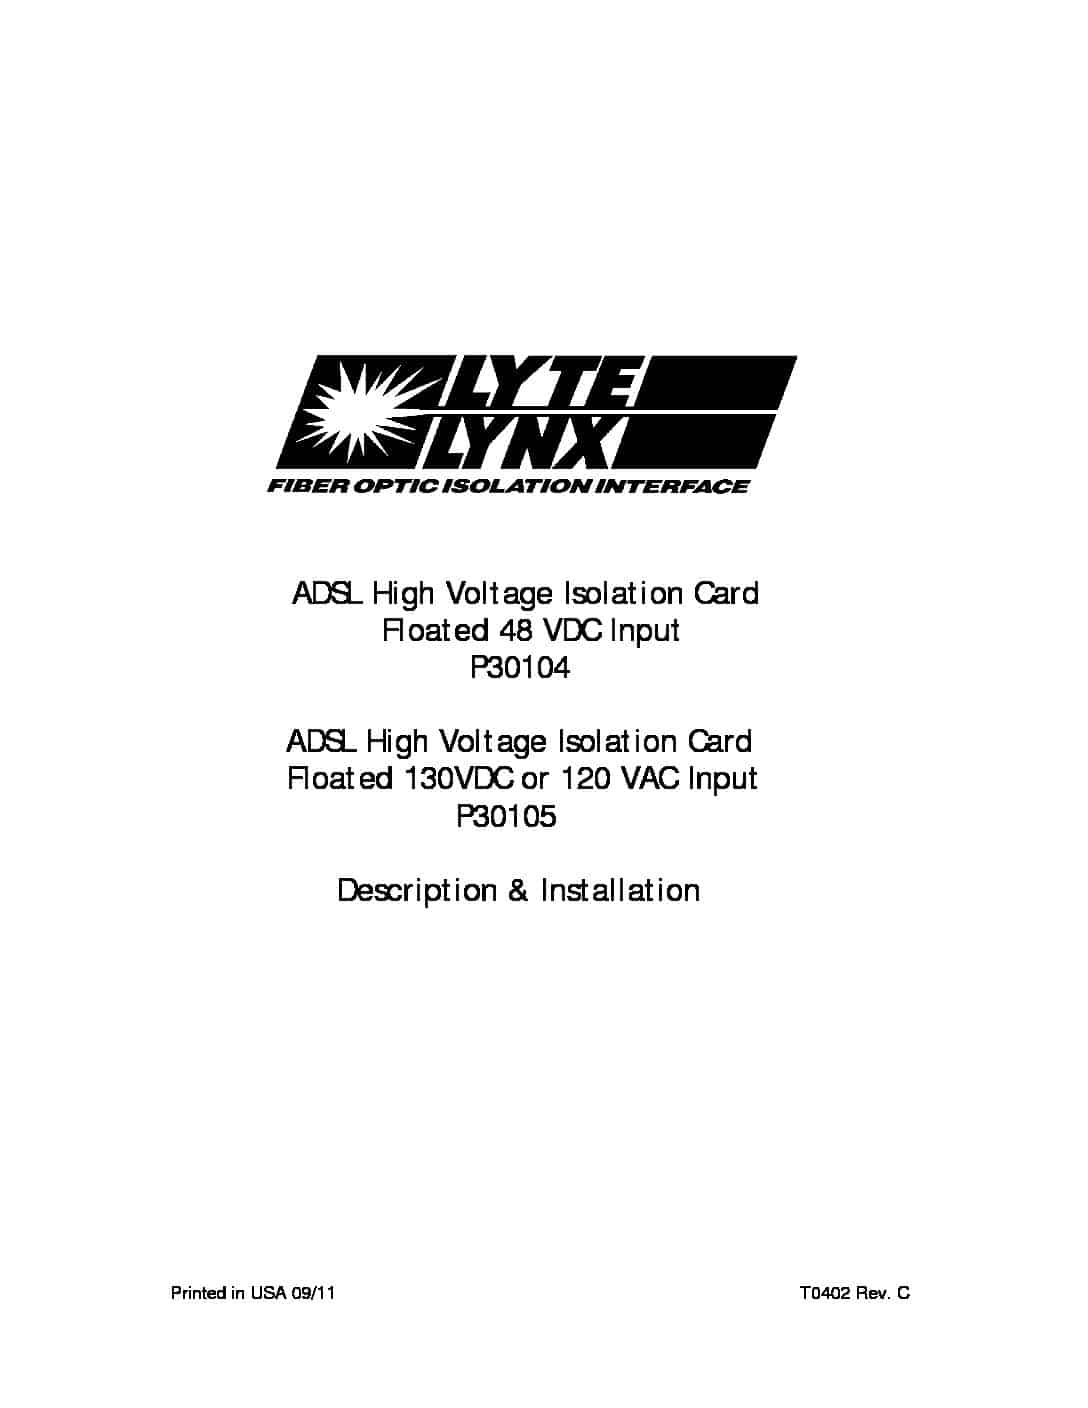 P30104 and P30105 ADSL High Voltage Isolation Card PDF thumbnail